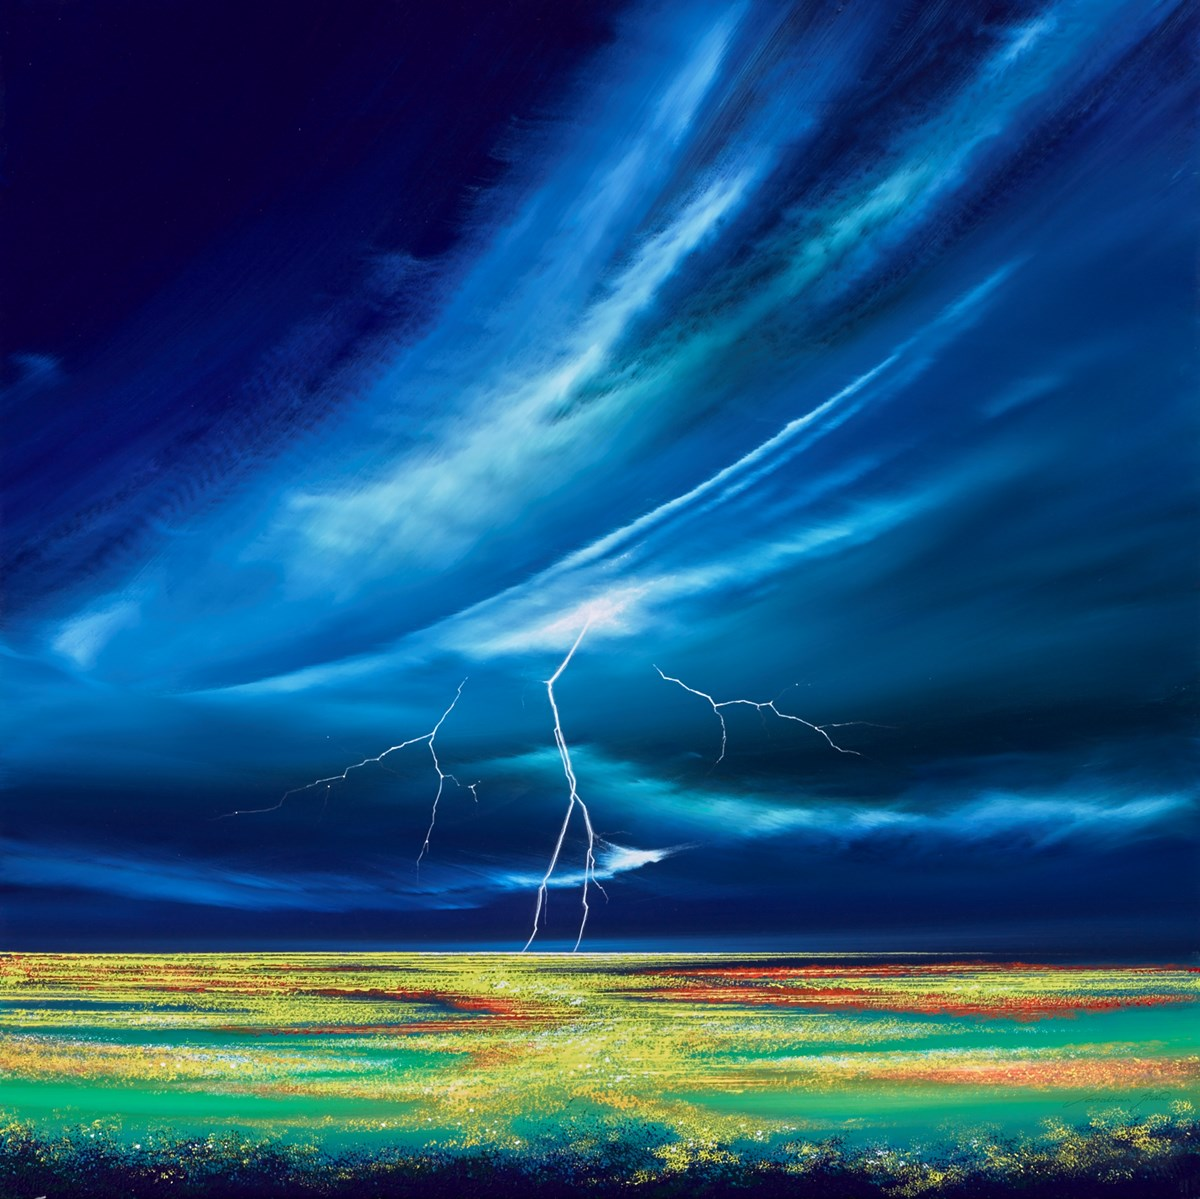 Lightning Landscape III by jonathan shaw -  sized 30x30 inches. Available from Whitewall Galleries